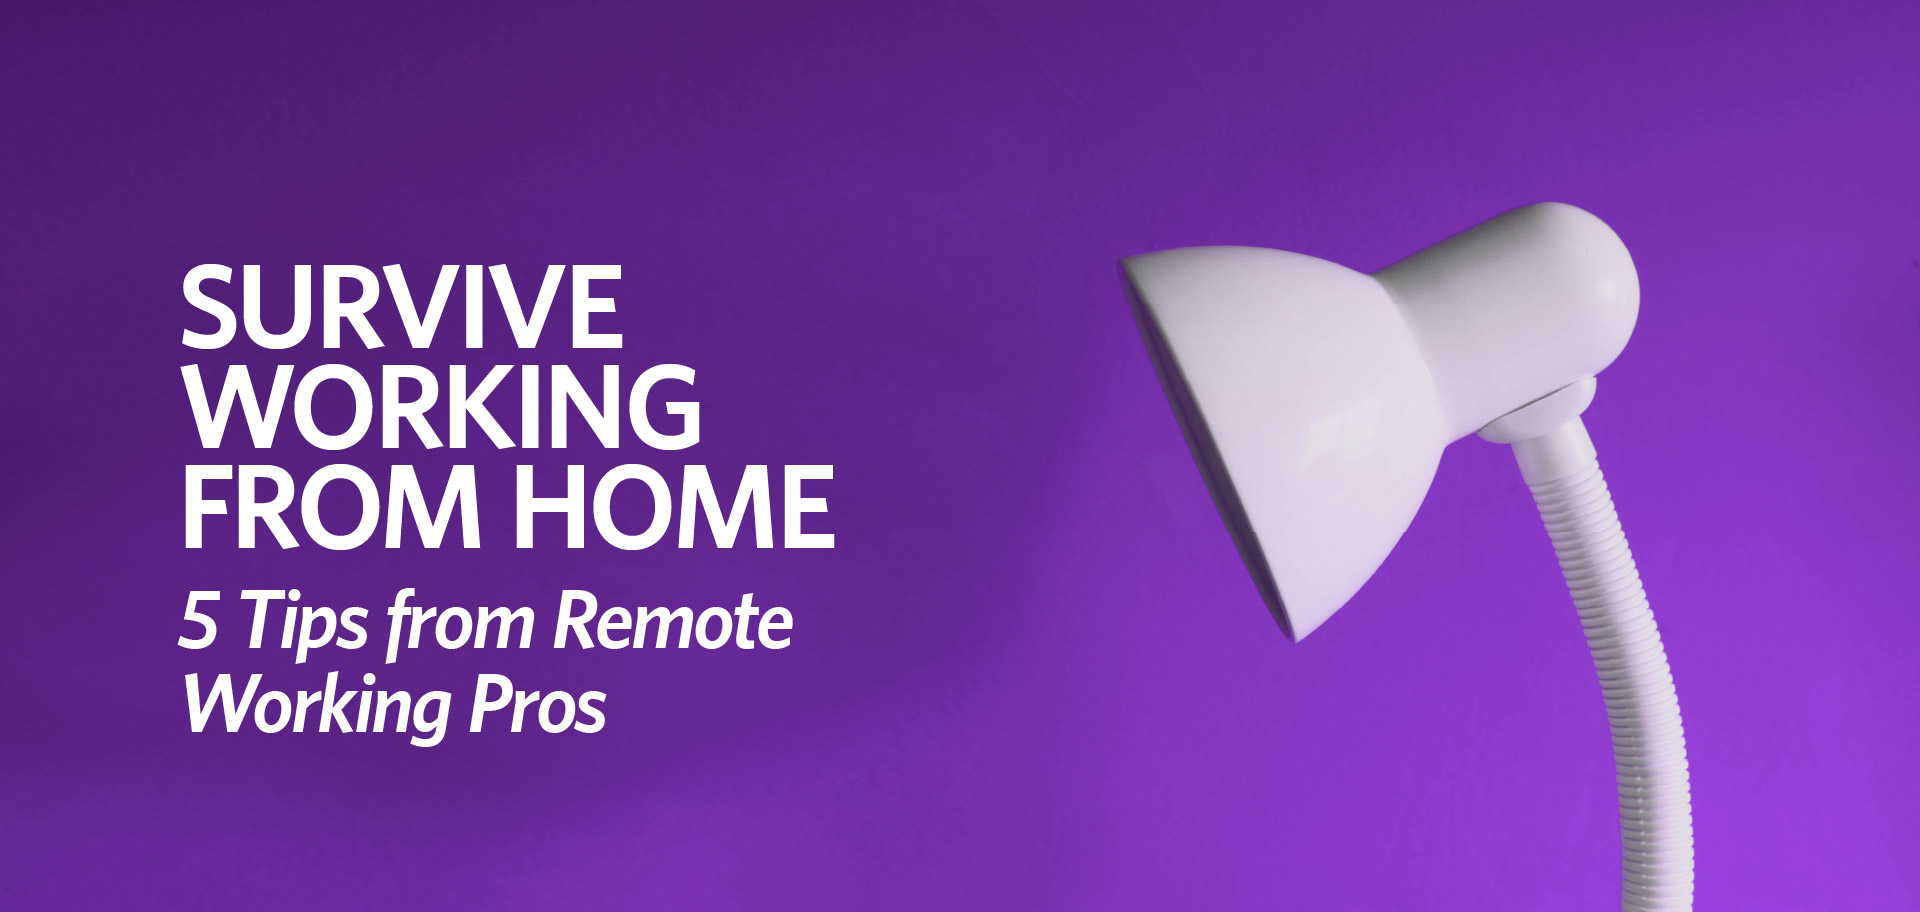 Survive working from home: 5 tips from remote working pros by Kettle Fire Creative working from home Survive Working from Home: 5 Tips from Remote Working Pros work from home fi